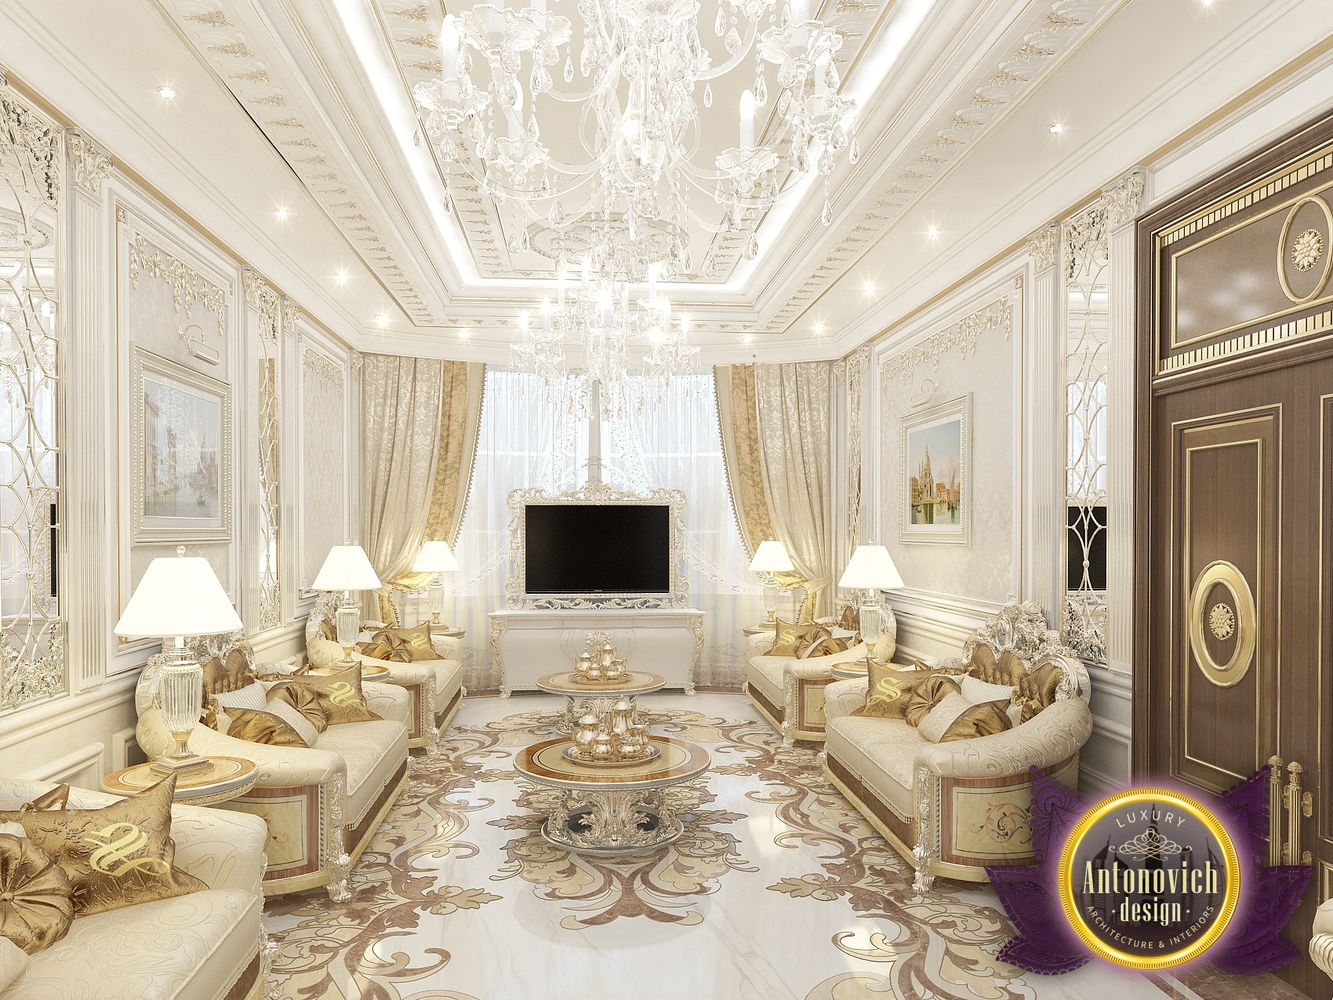 Luxury antonovich design uae living room interior design for Interior design receiving room